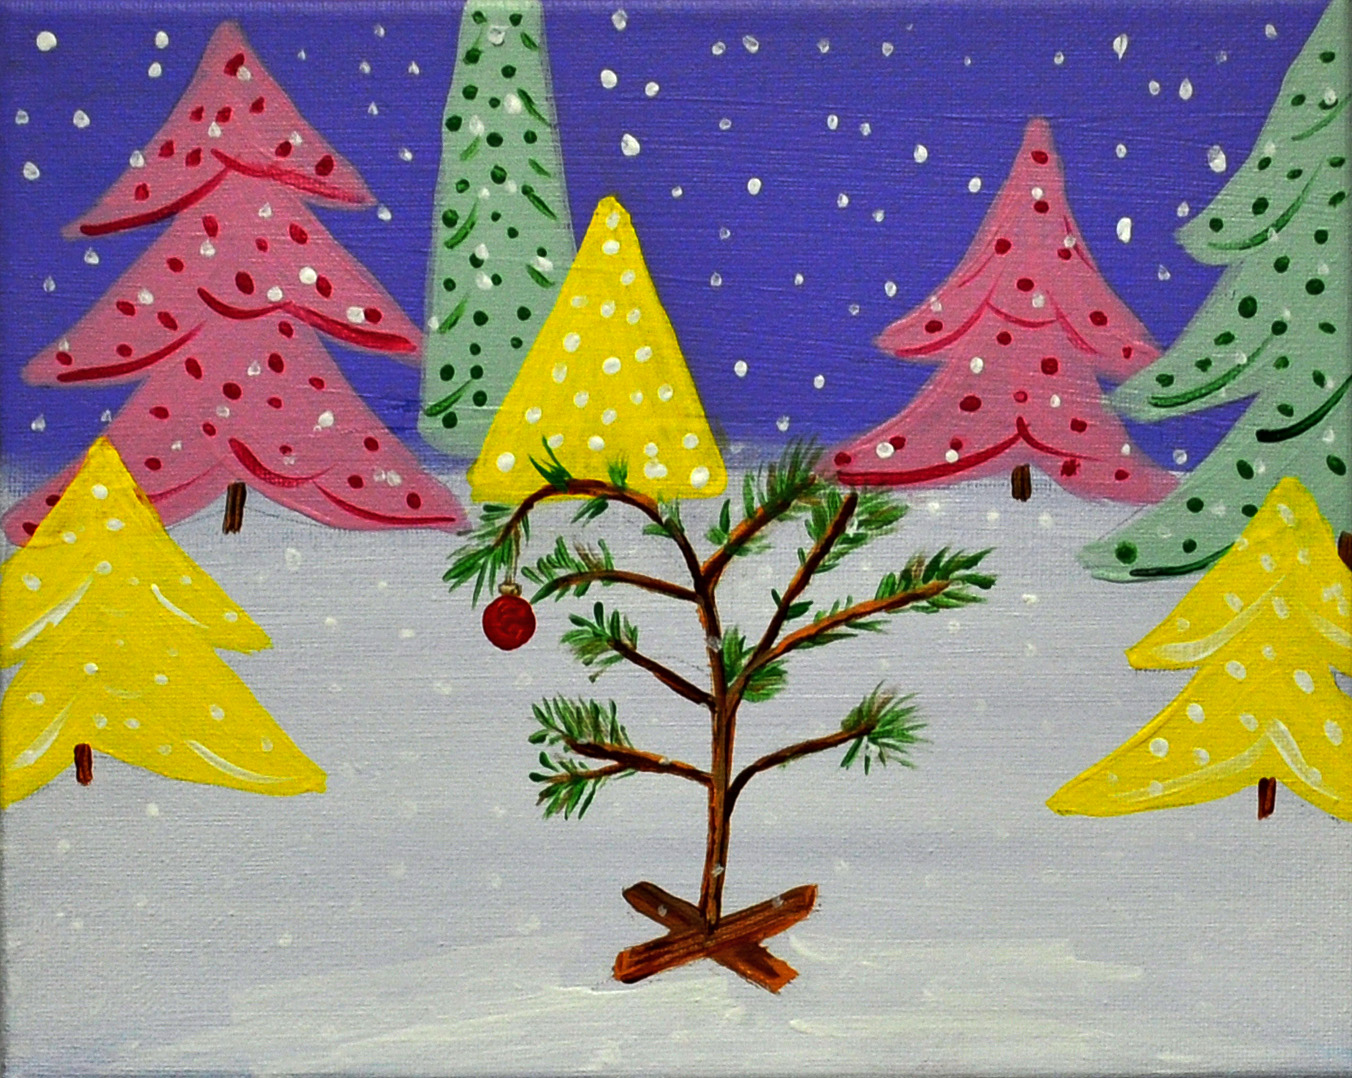 Christmas Paintings For Kids.Kids Painting Party Just Needs A Little Love Dec 5 2015